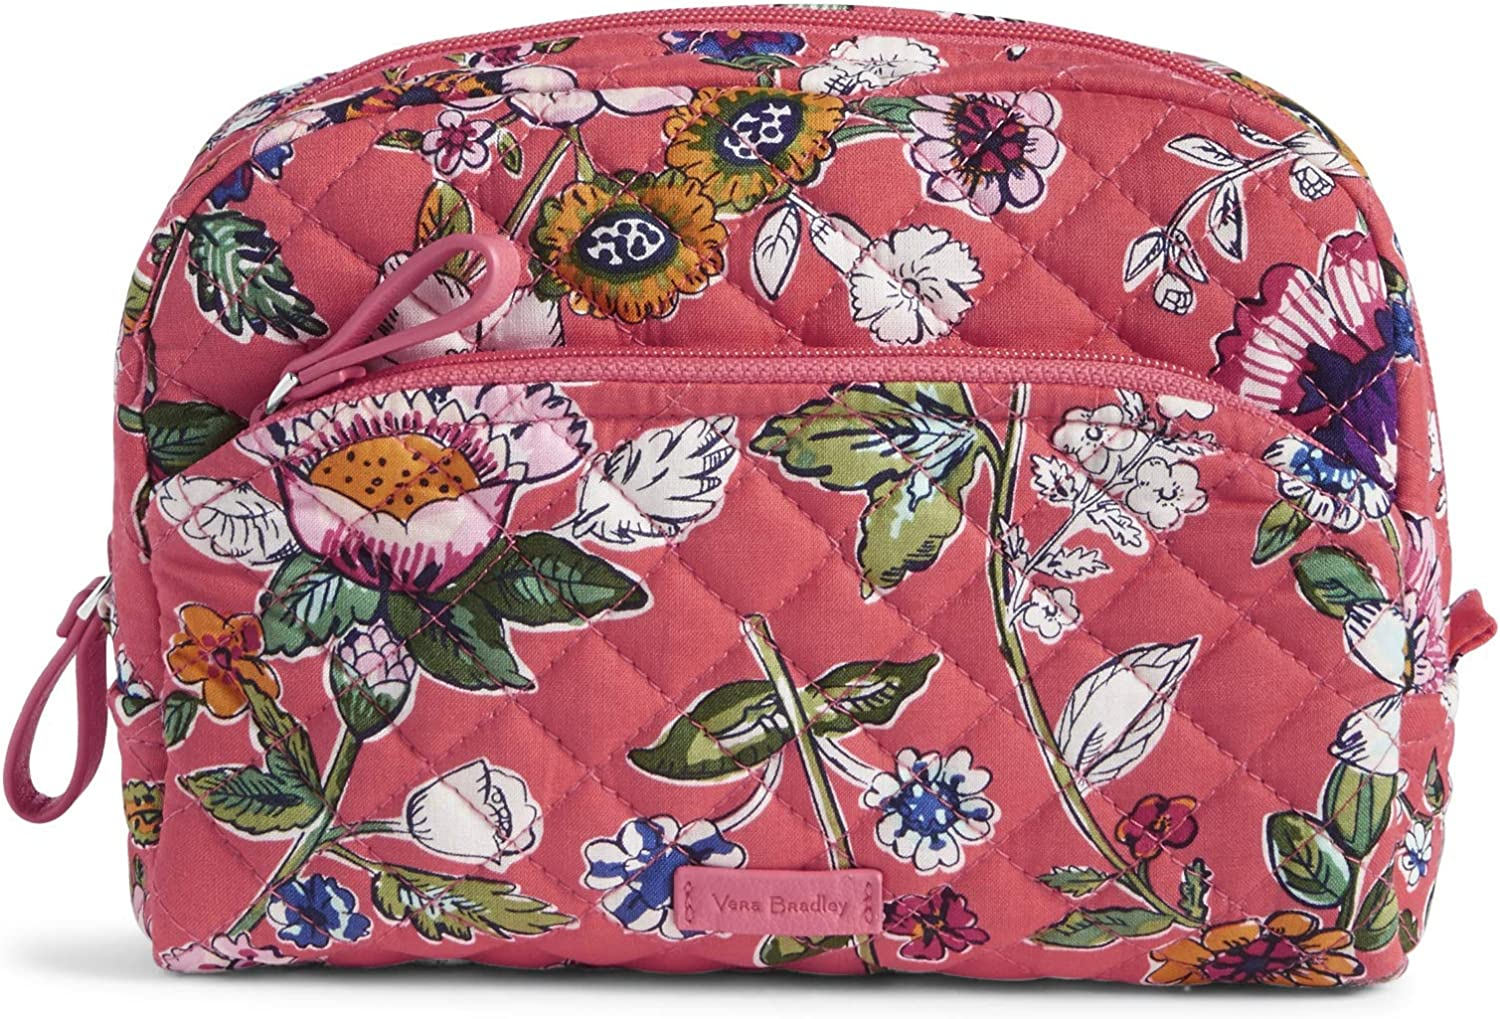 Vera Bradley Iconic Medium Cosmetic, Signature Cotton